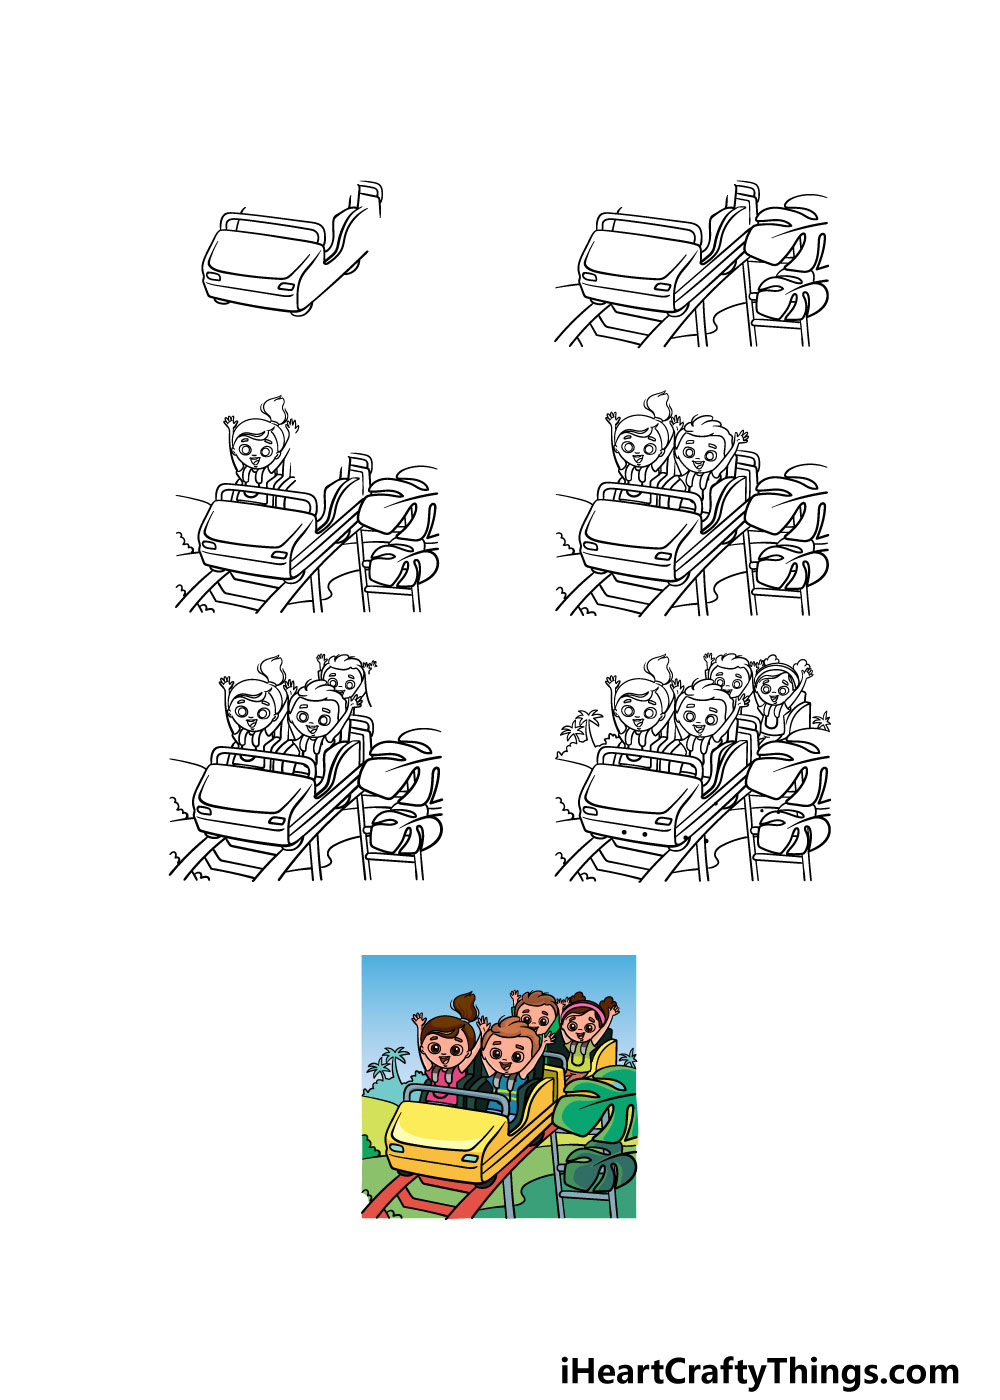 how to draw a roller coaster in 7 steps